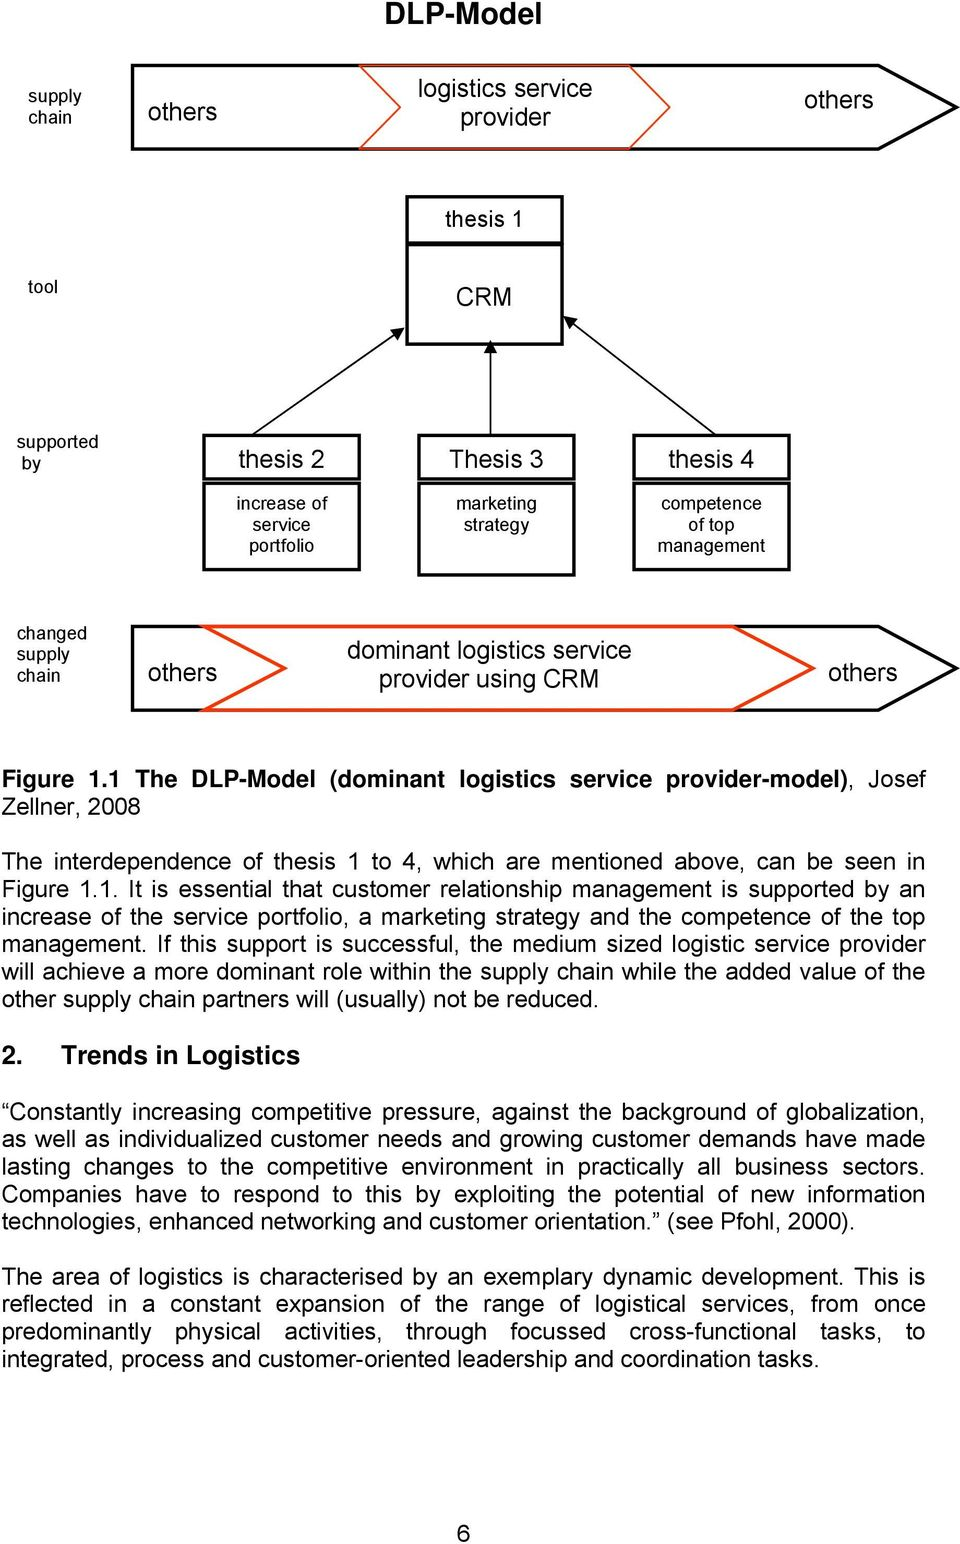 1 The DLP-Model (dominant logistics service provider-model), Josef Zellner, 2008 The interdependence of thesis 1 to 4, which are mentioned above, can be seen in Figure 1.1. It is essential that customer relationship management is supported by an increase of the service portfolio, a marketing strategy and the competence of the top management.